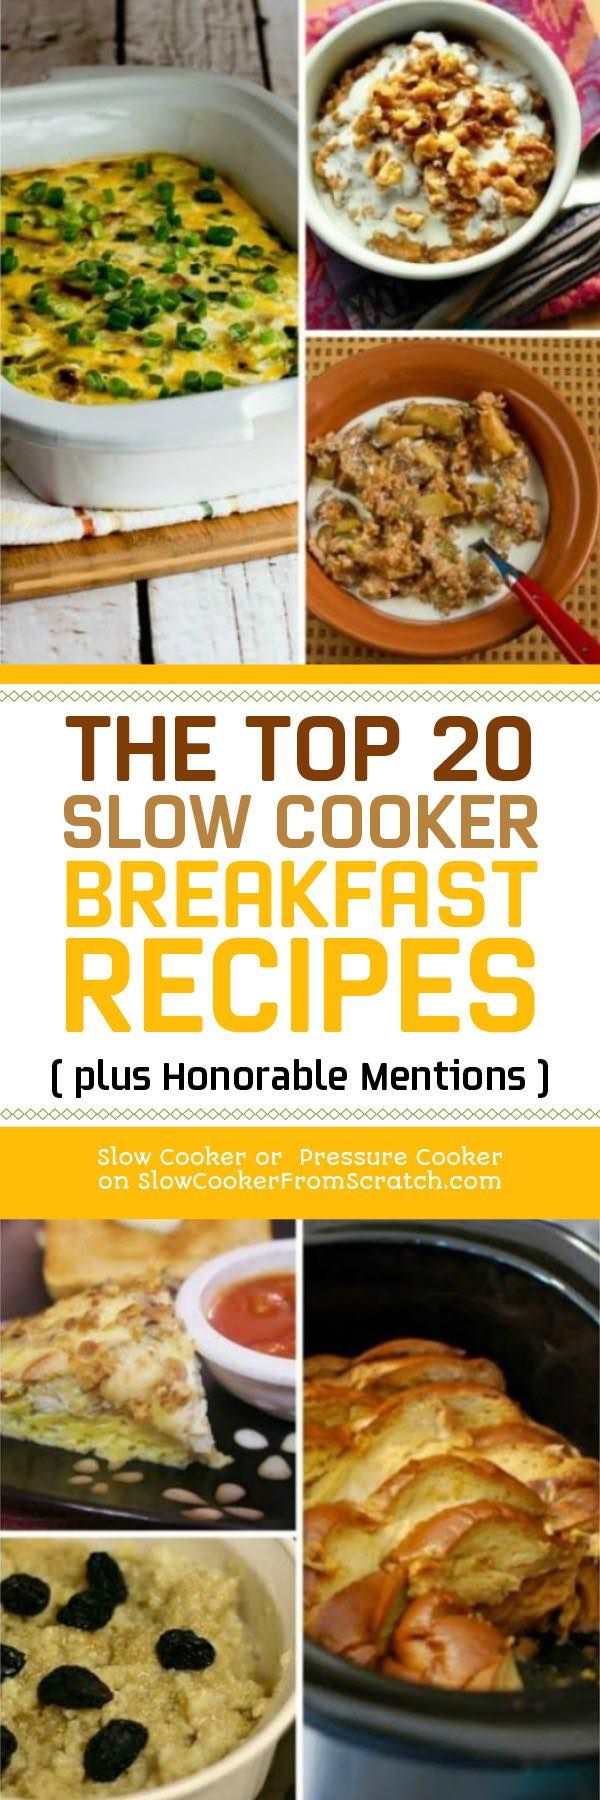 The Top 20 Slow Cooker Breakfast Recipes